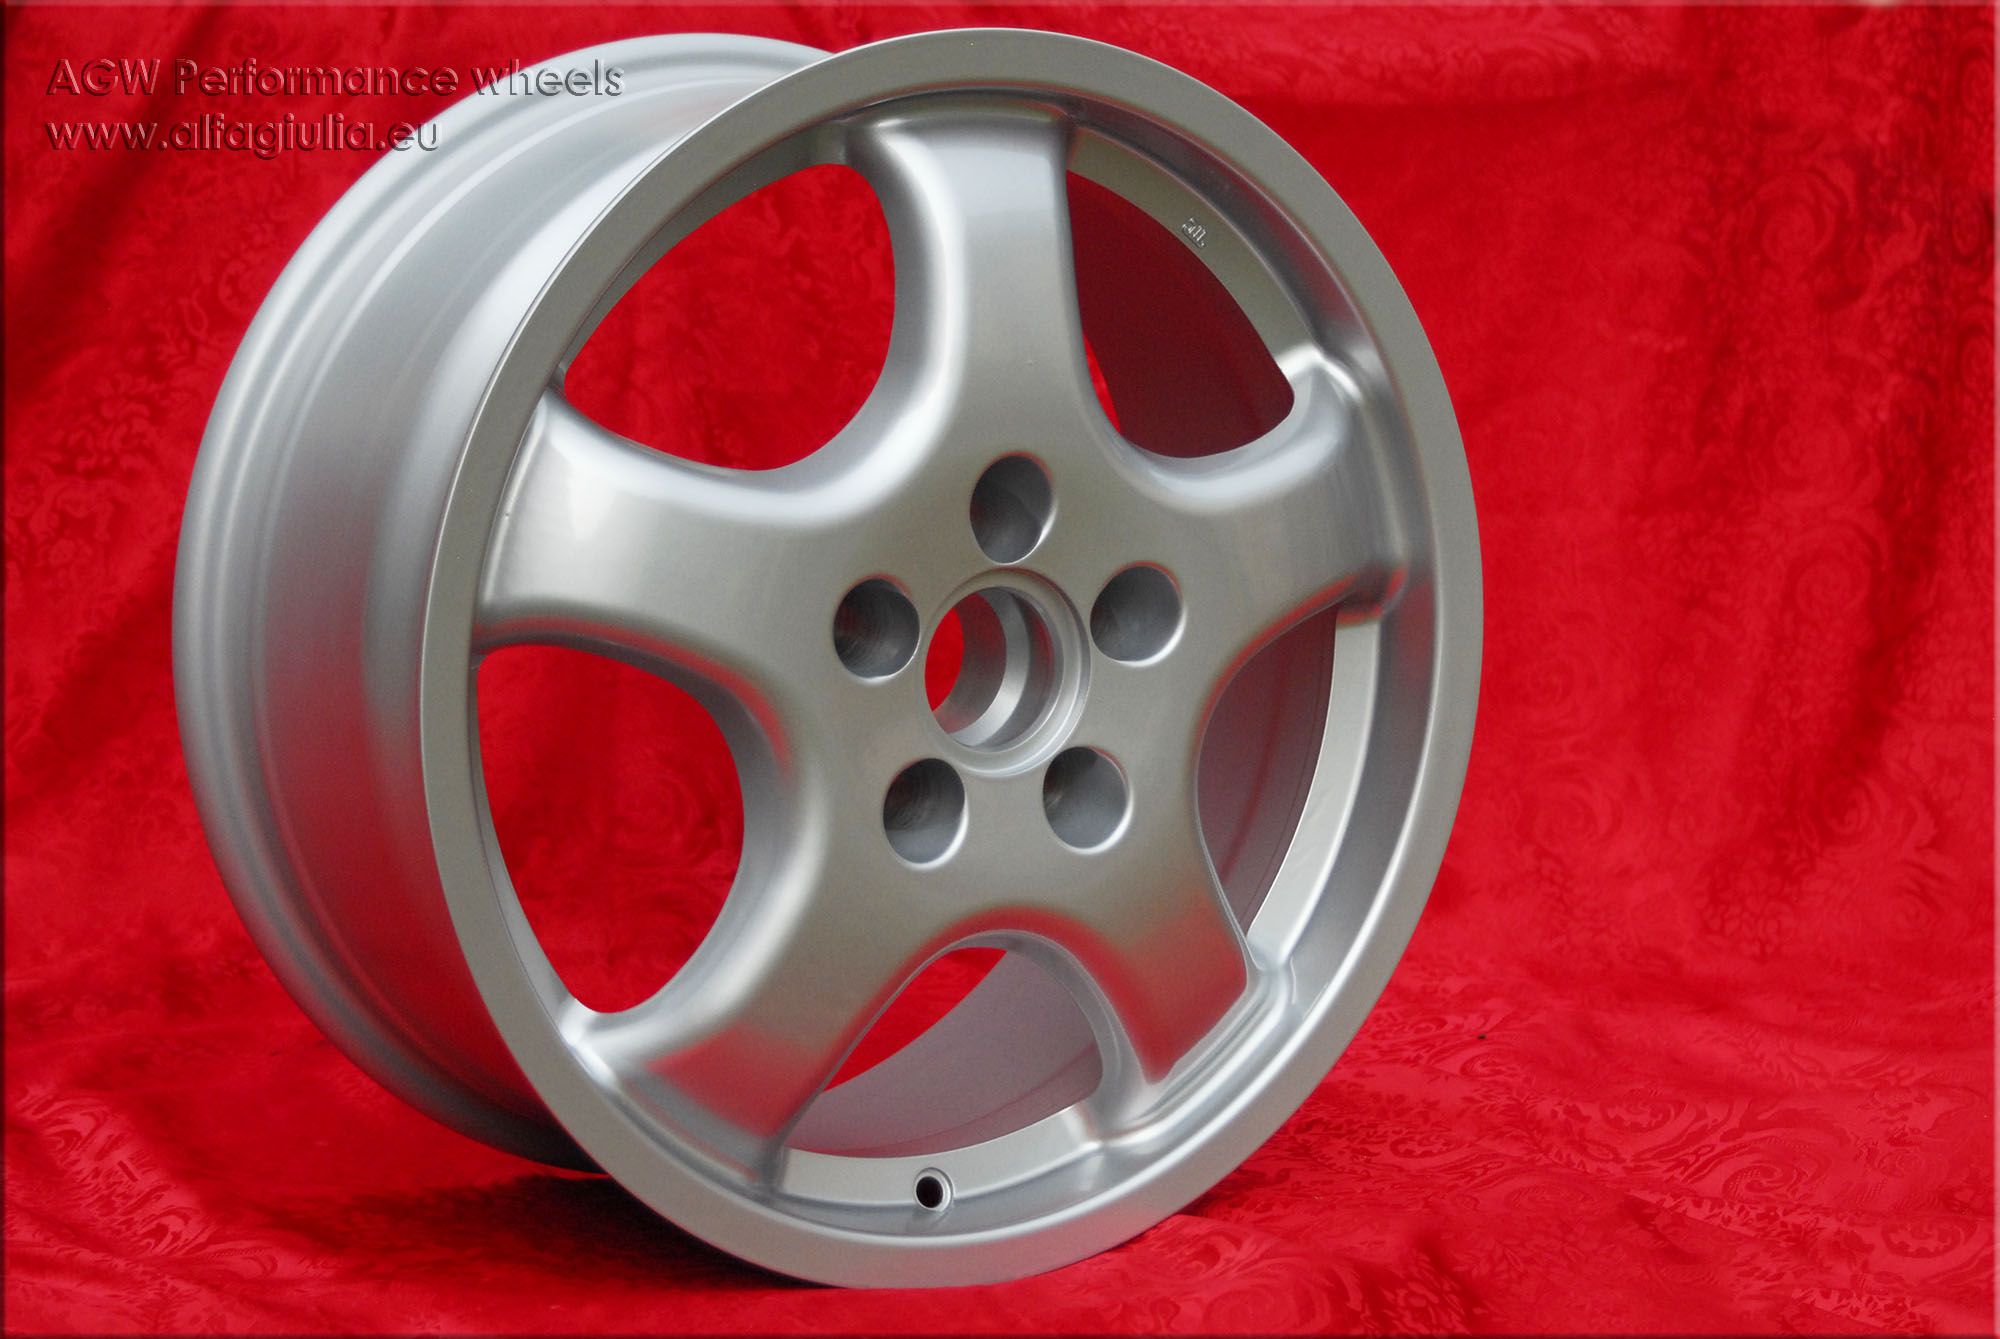 Skoda Cup Skoda Octavia Superb  7.5x17 ET38 5x112 c/b 57.1 mm Wheel